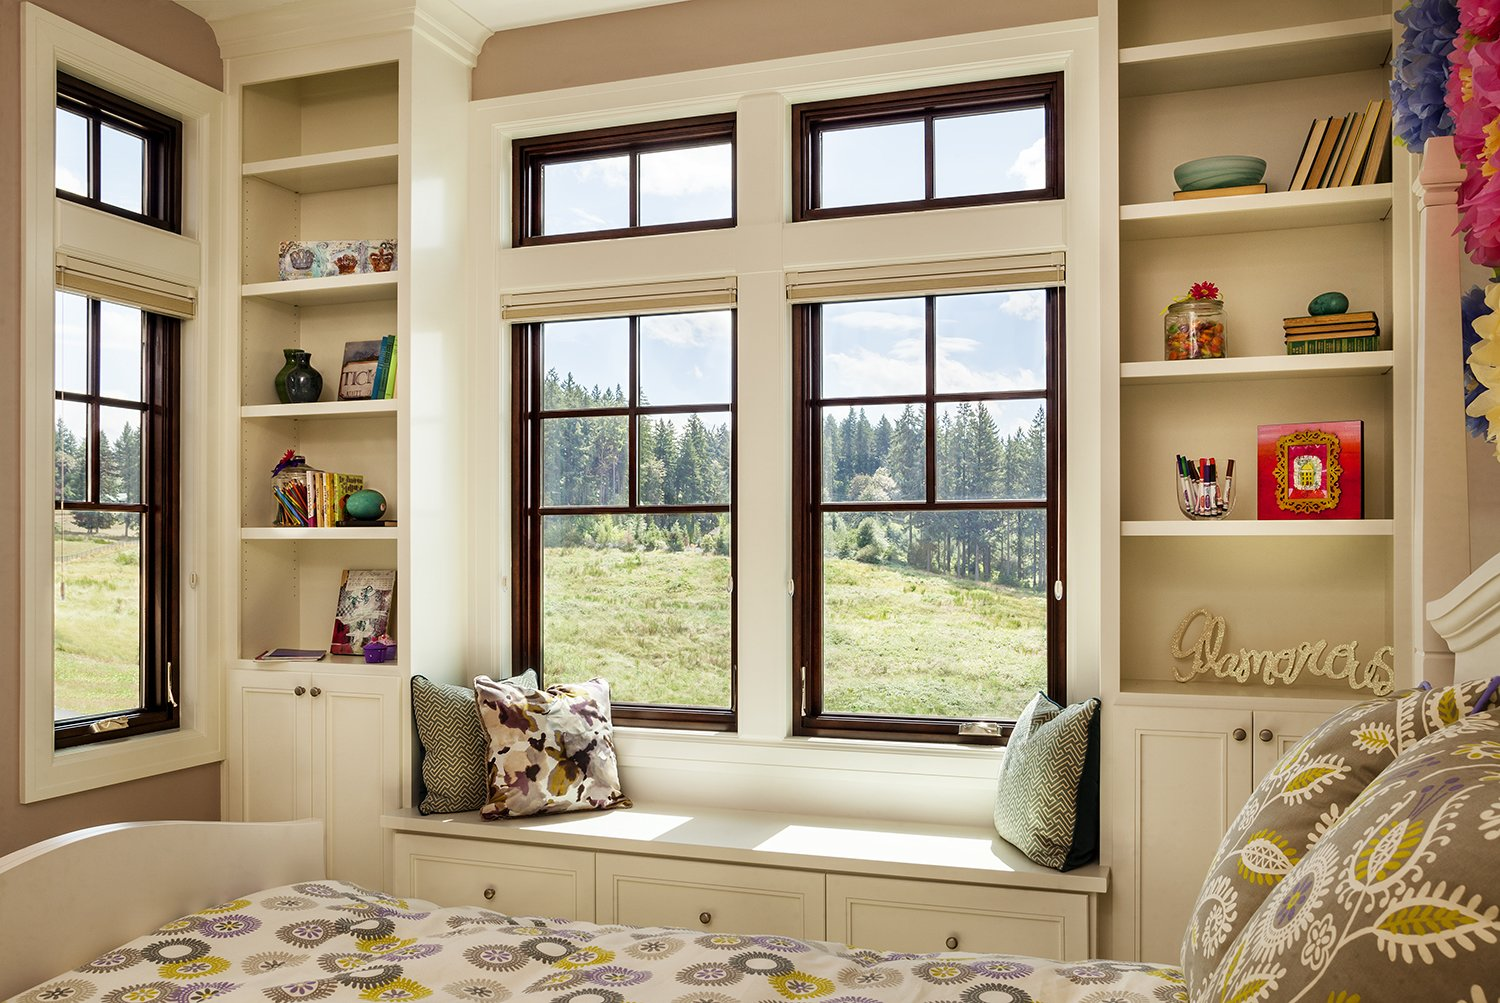 Milgard Essence Series® windows are available in a wide variety of obscure glass patterns, and for spaces that demand serenity, laminated glass is especially proficient at noise attenuation.